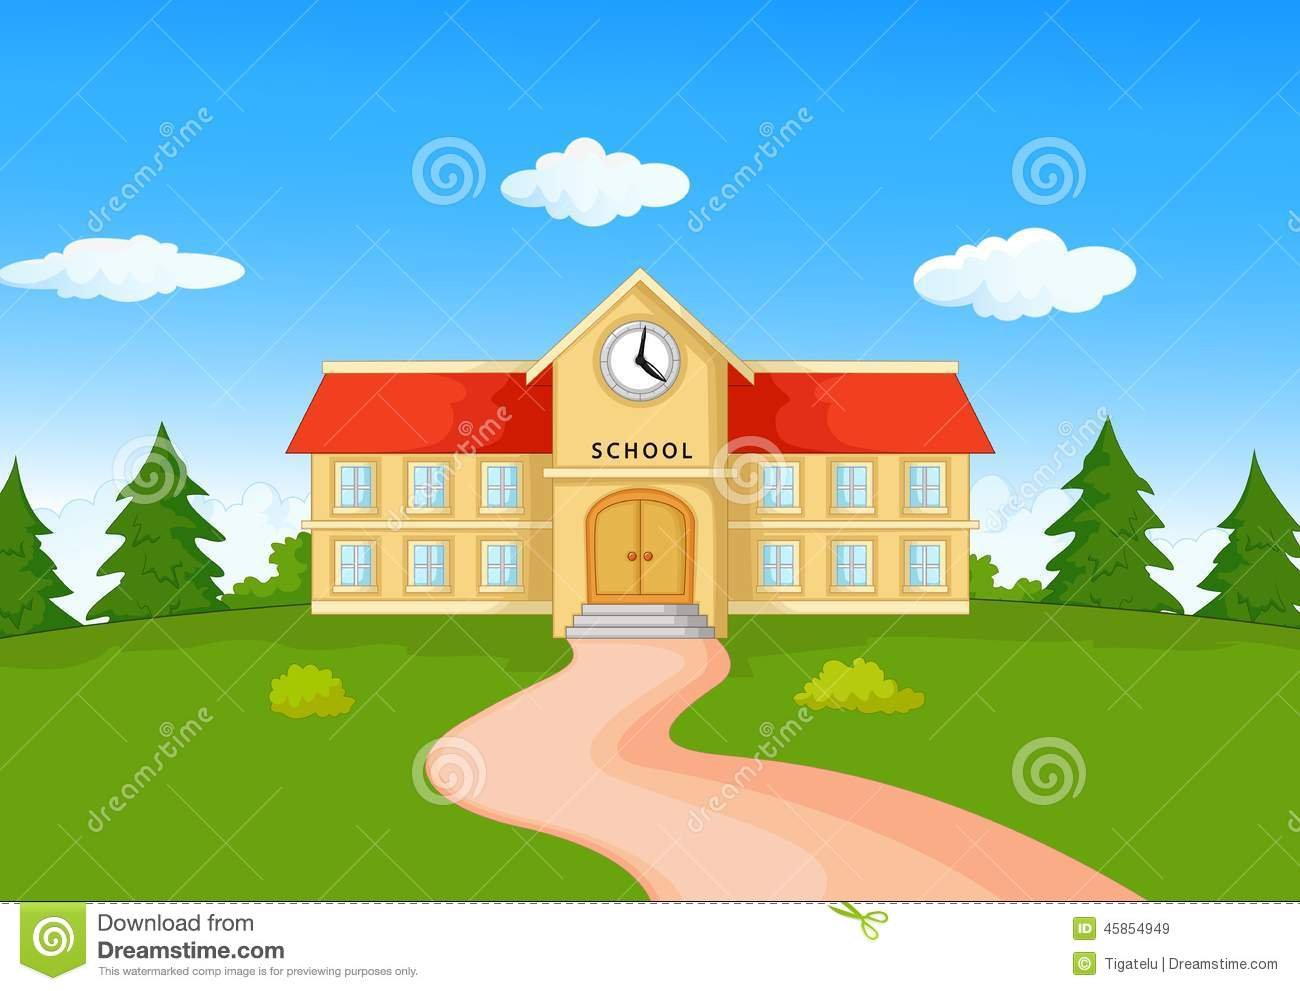 cartoon school building pictures to pin on pinterest Cartoon Bus Station Cartoon Bus Station